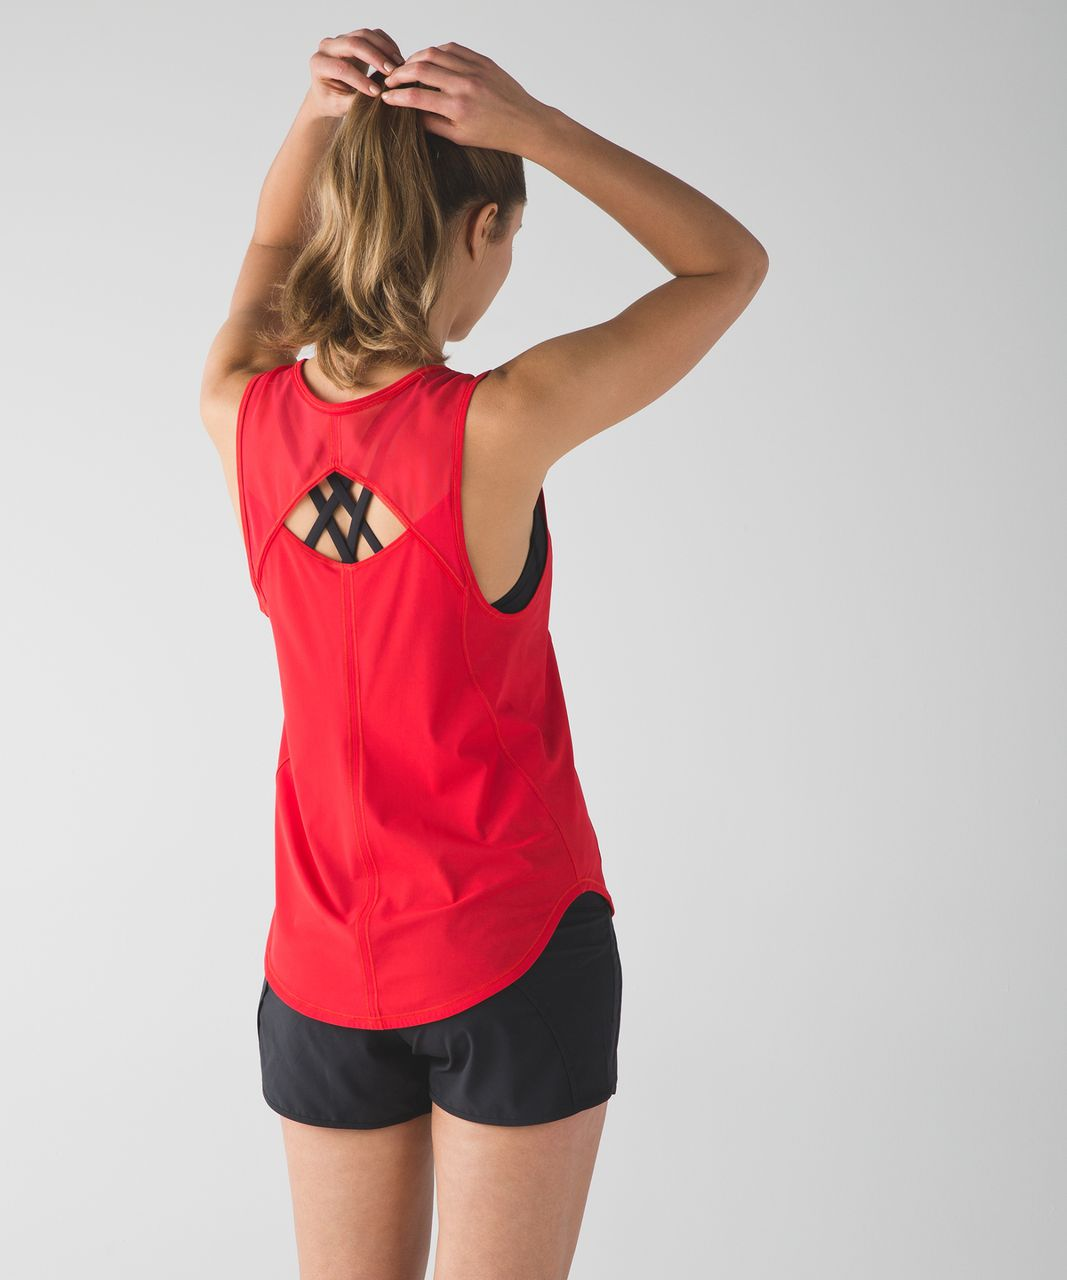 Lululemon Sculpt Tank - True Red (First Release)